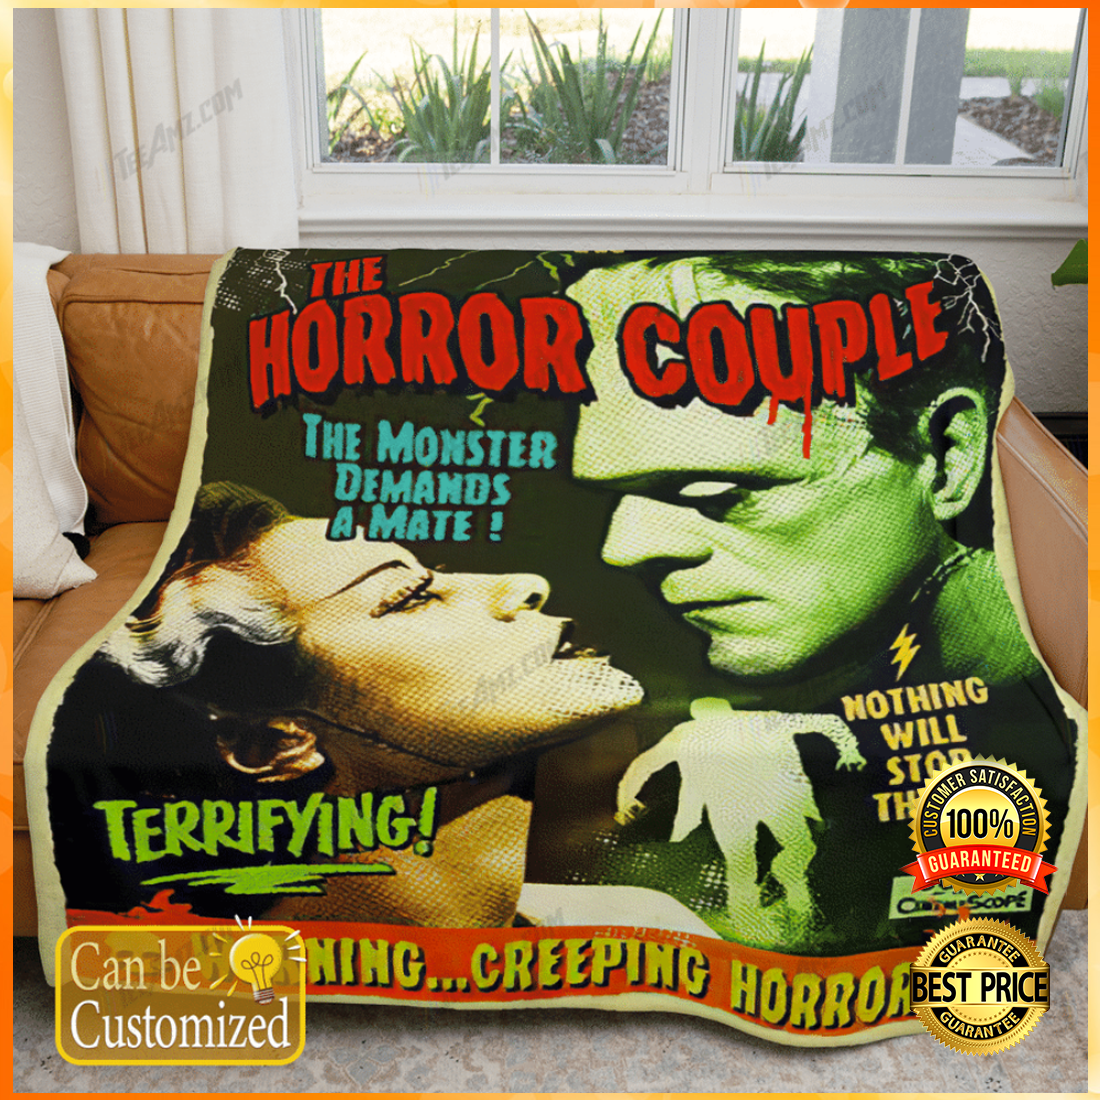 Personalized the horror couple the monster demands a mate blanket 4